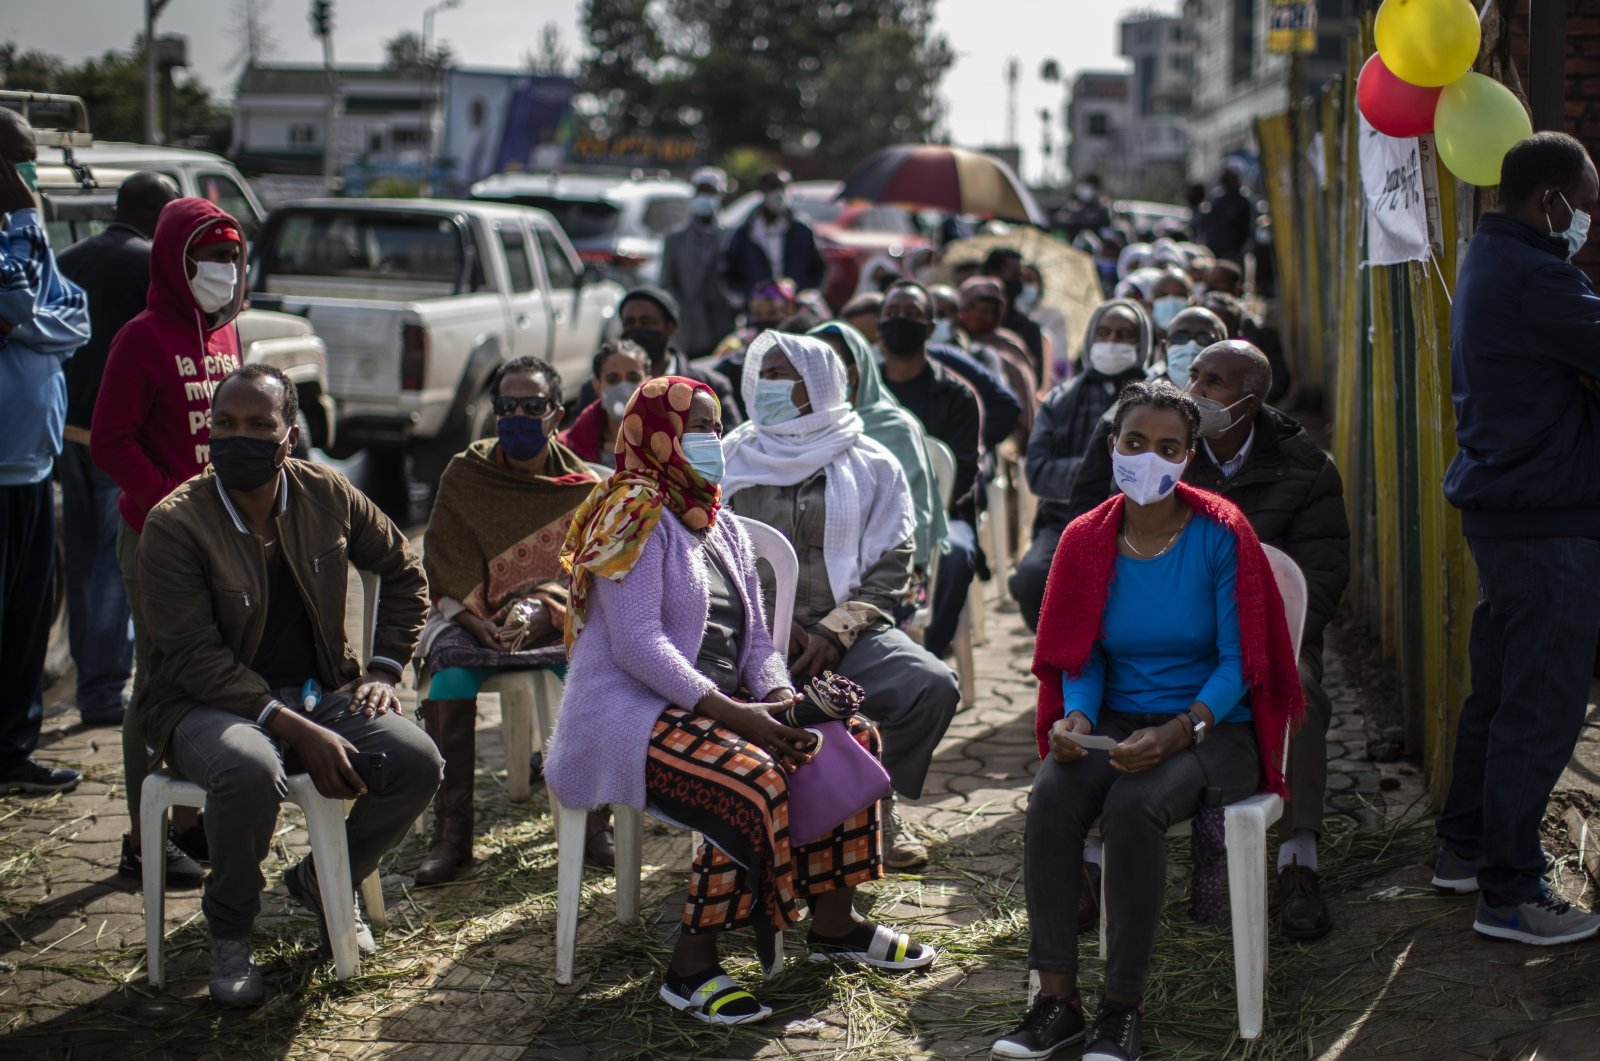 Ethiopians queue on chairs in the street as they wait to cast their votes in the general election at a polling center in the capital Addis Ababa, Ethiopia, Monday, June 21, 2021. (AP Photo)